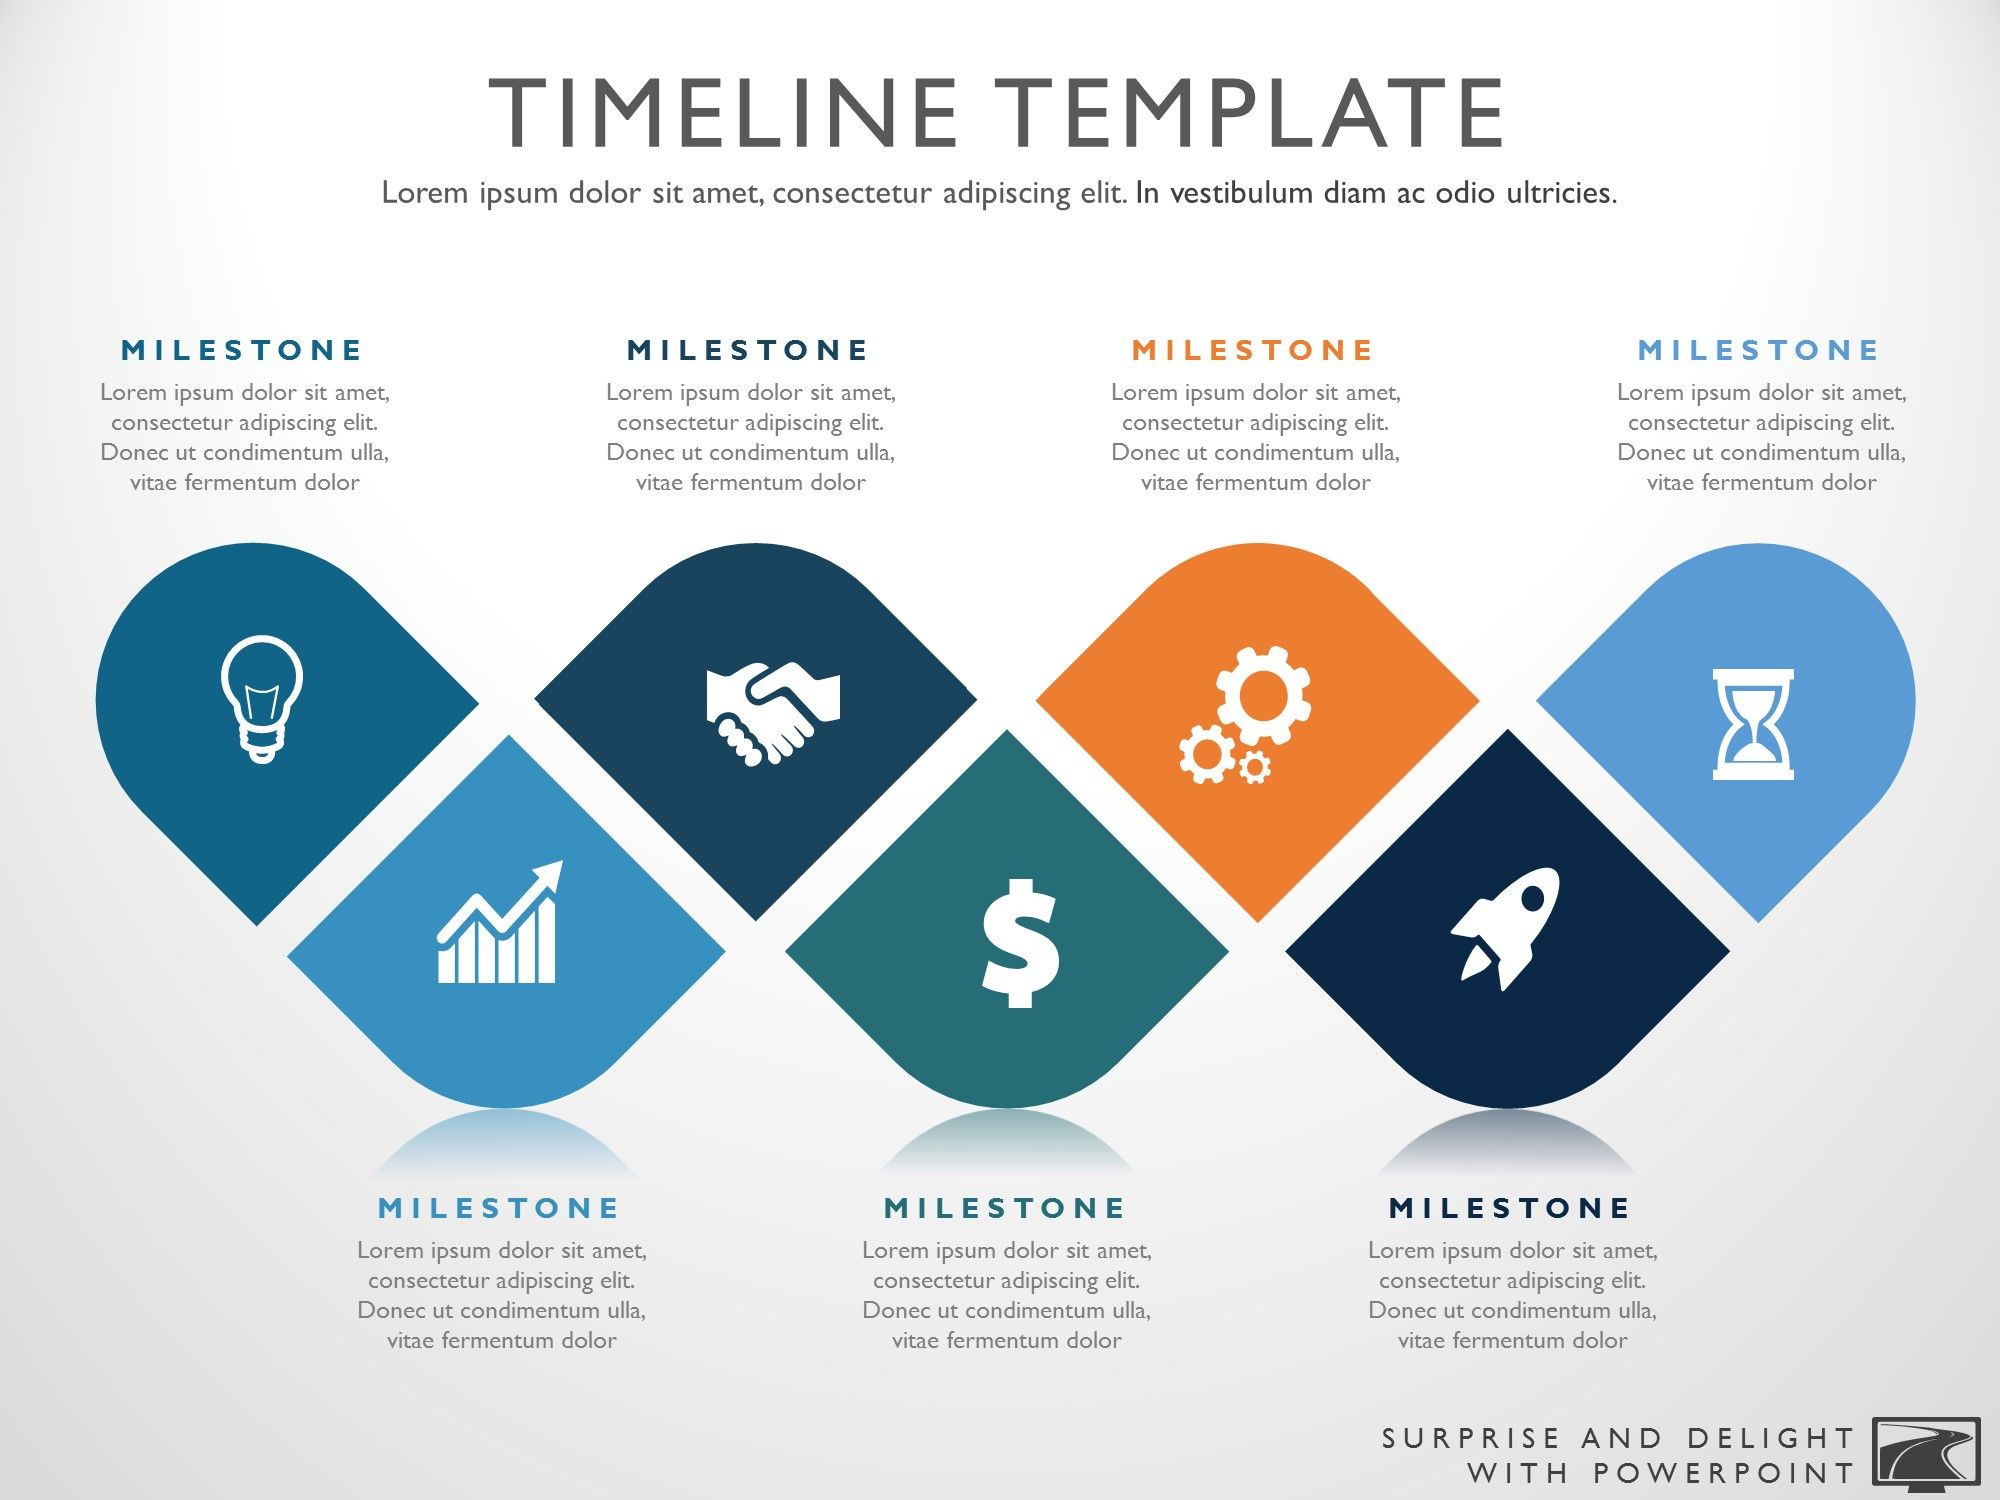 Seven Phase Visual Timeline Template.